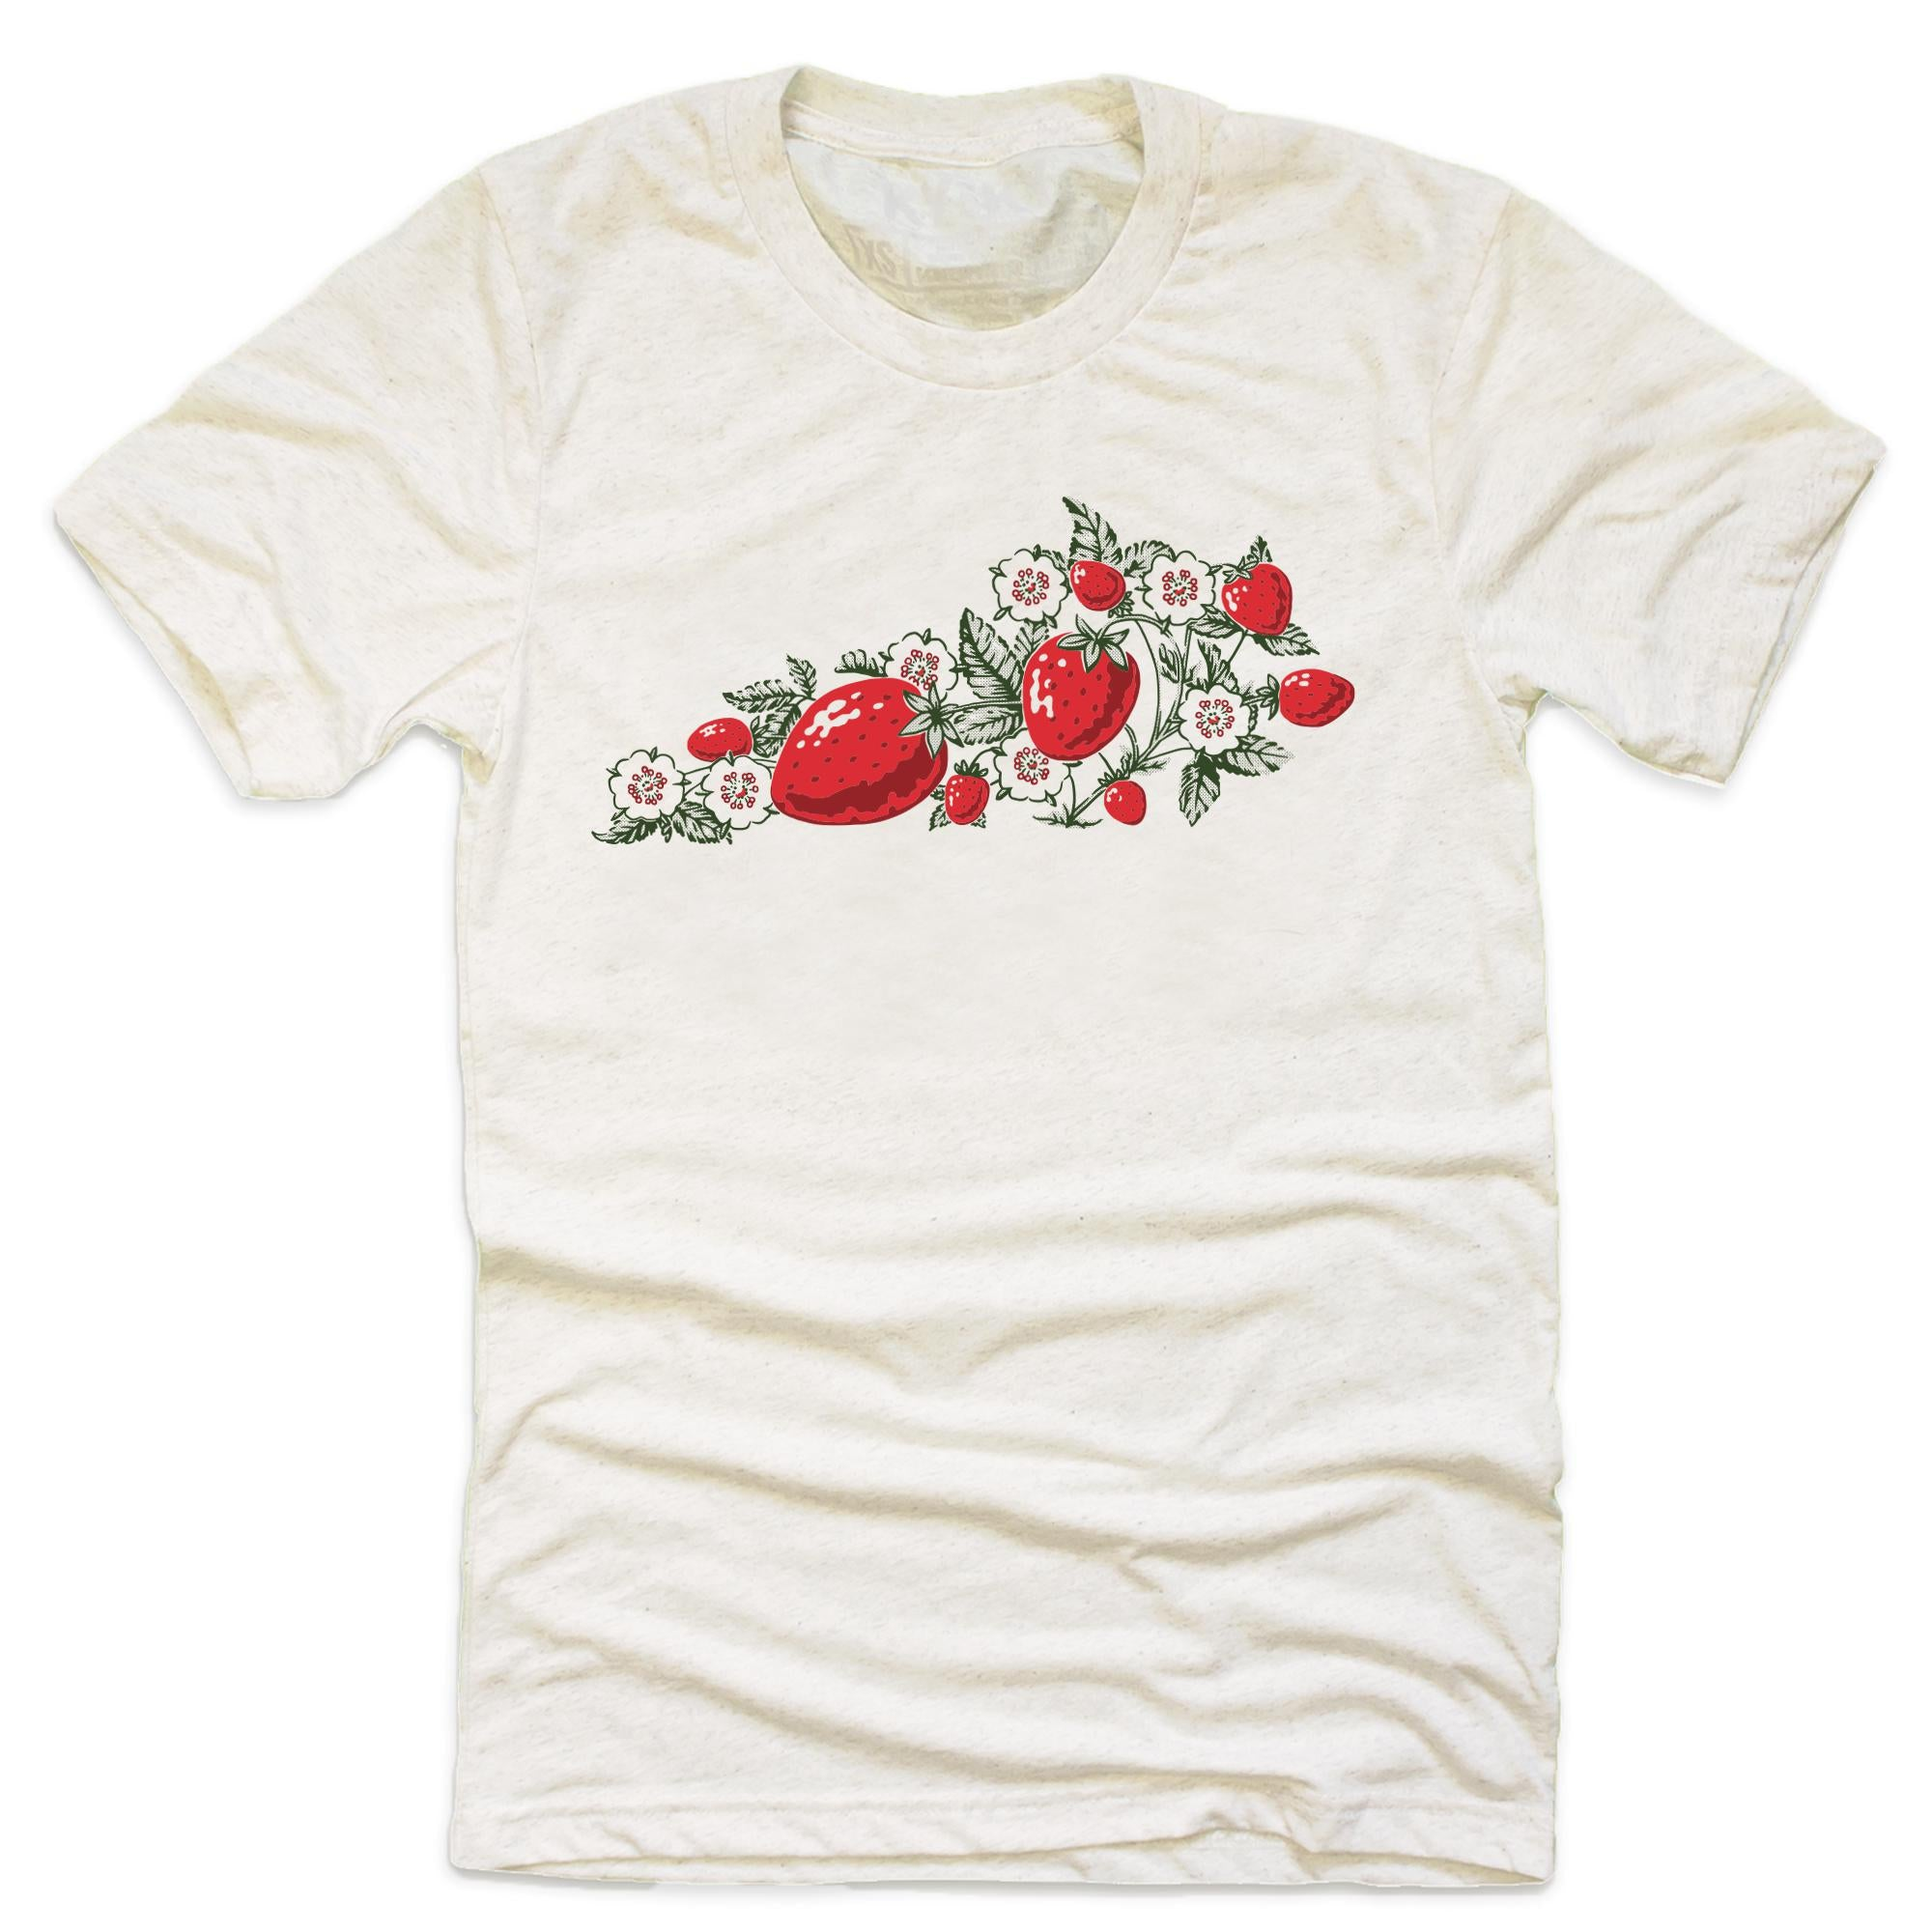 Strawberry KY T-Shirt-T-Shirt-KY for KY Store